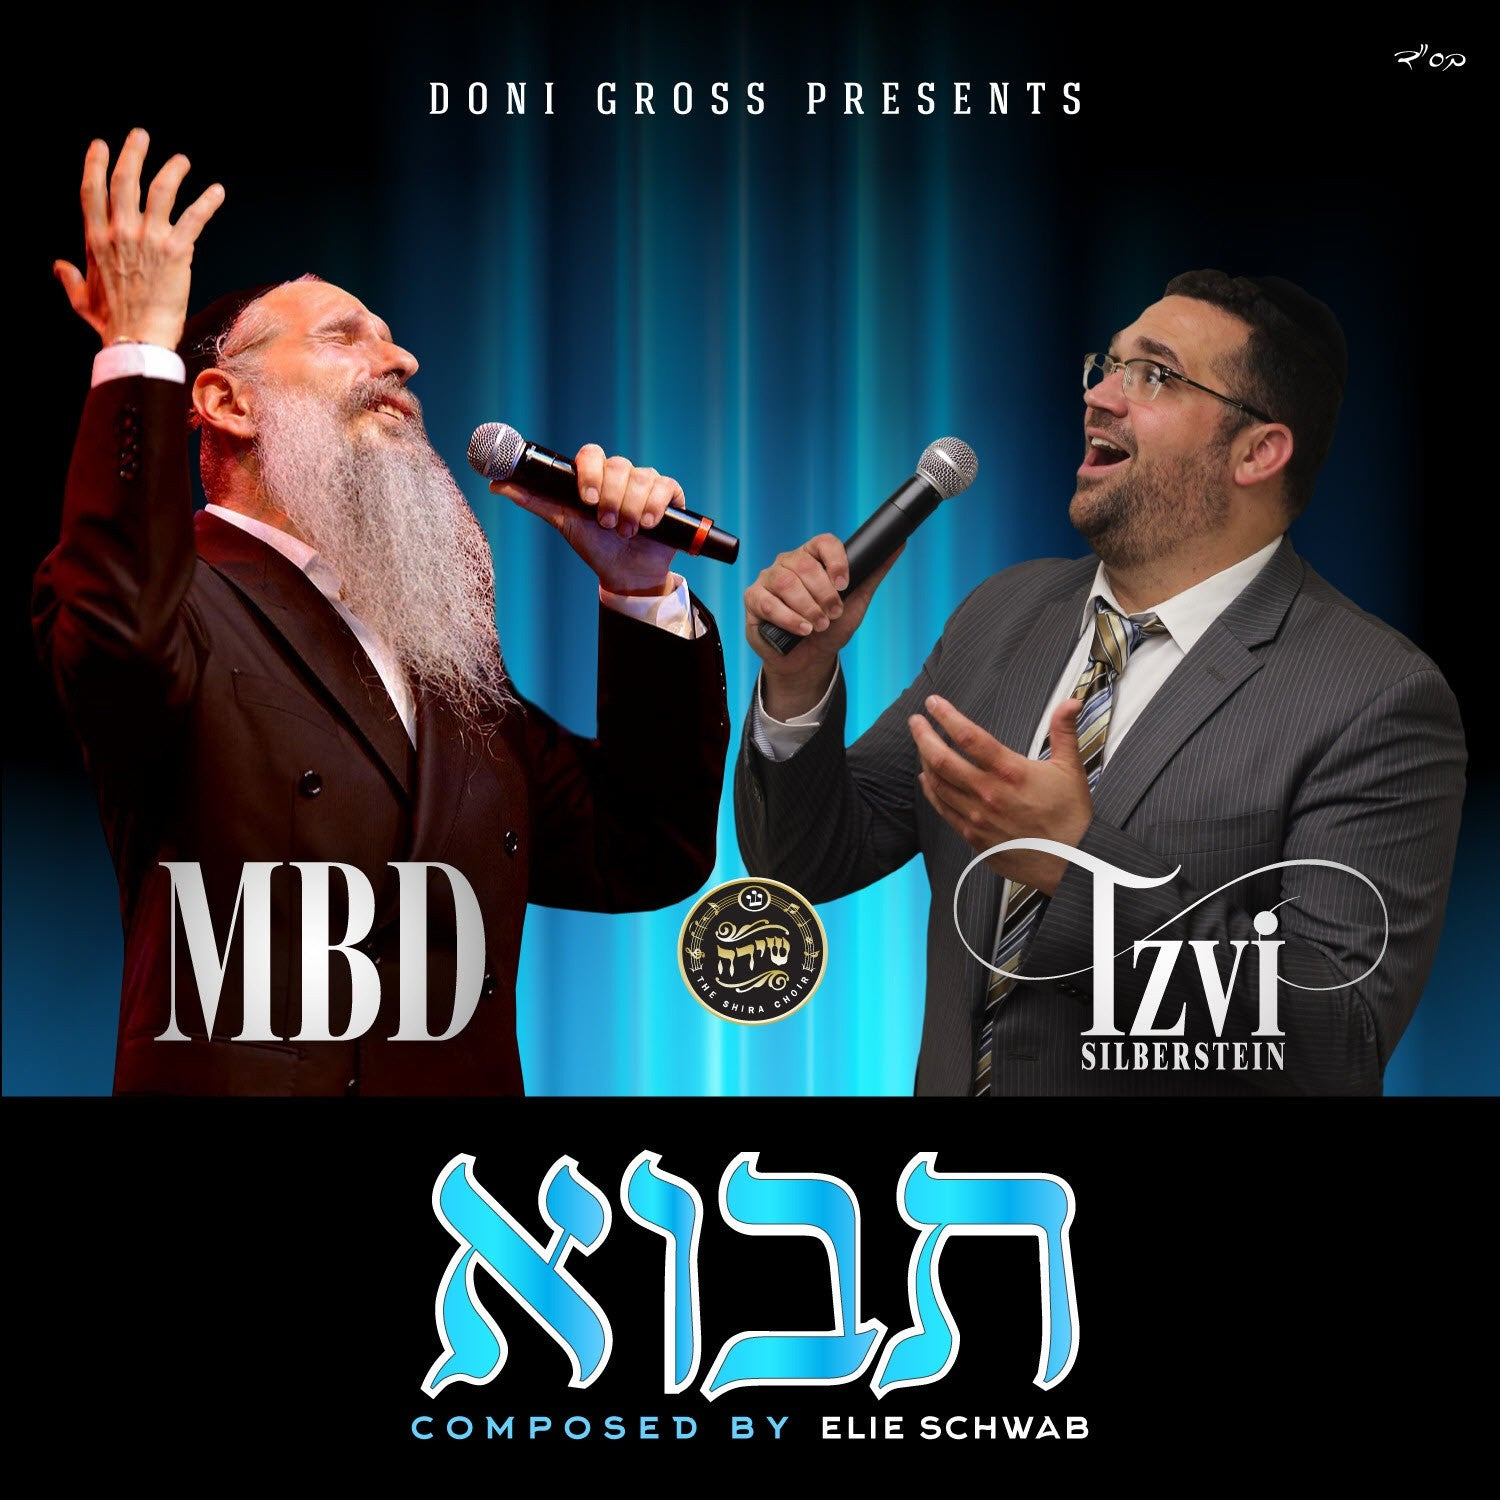 Tzvi Silberstein & MBD - Tavoi (Single)